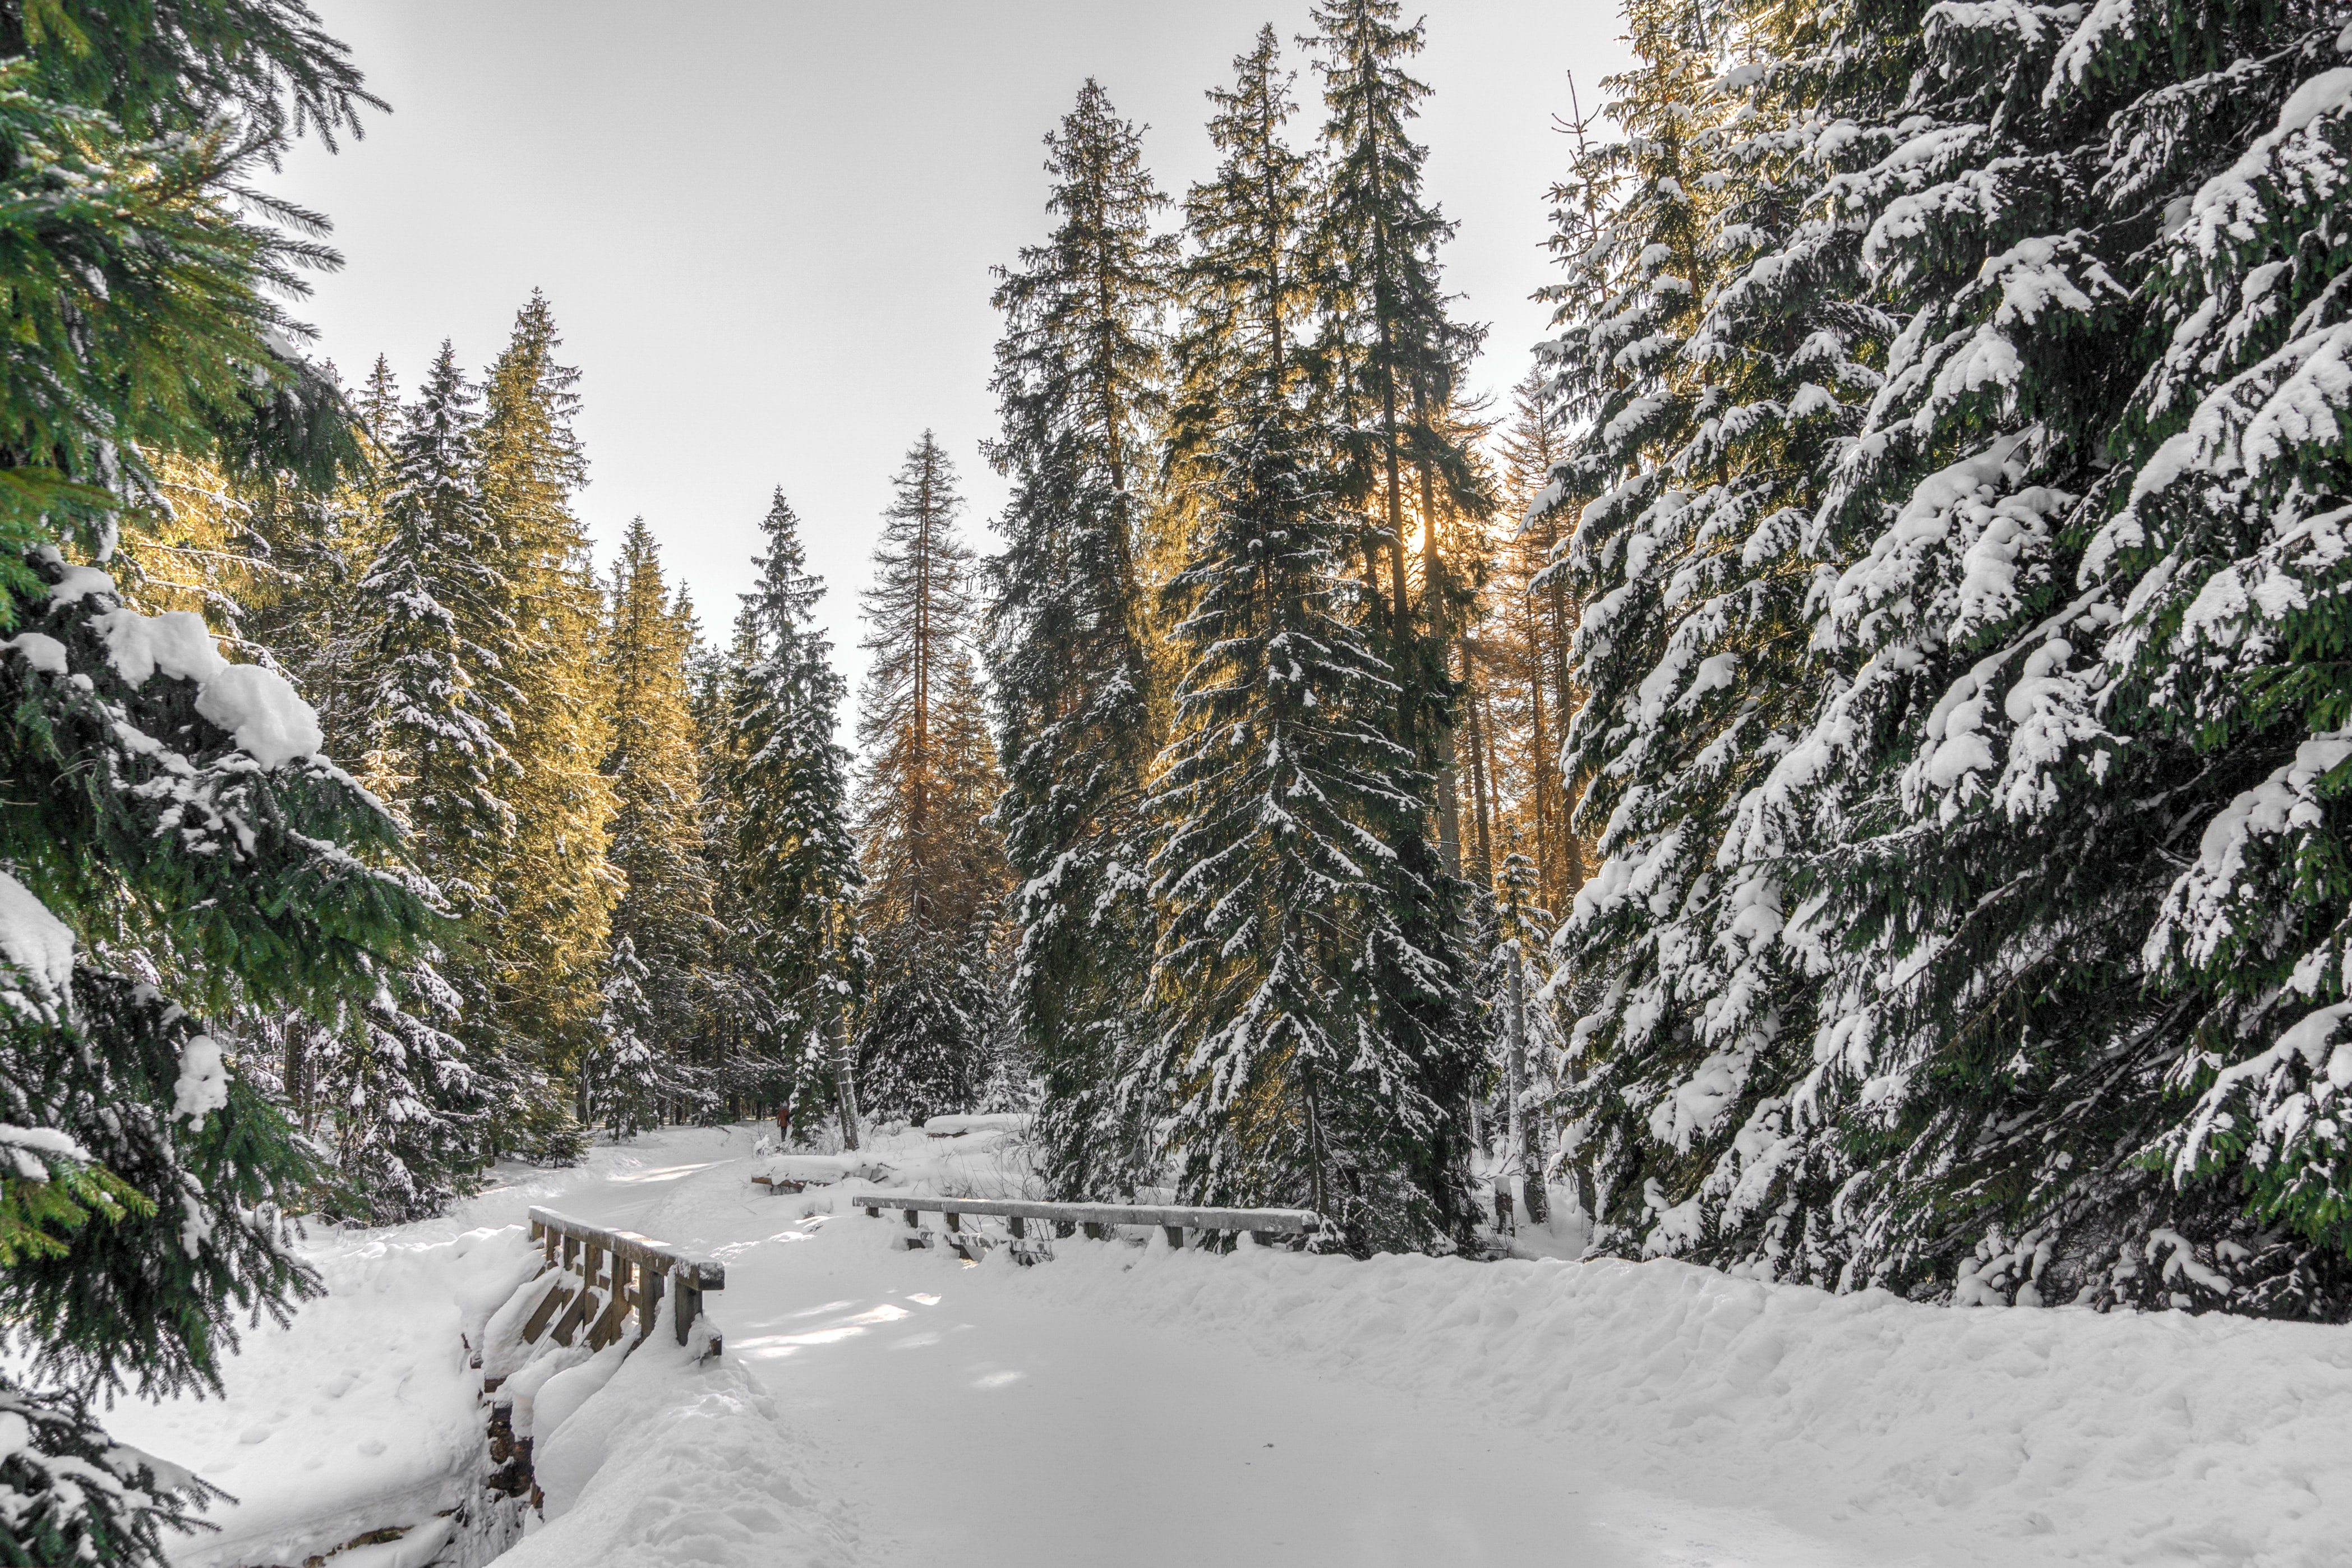 A view of a snow covered bridge on a road in the middle of the forest